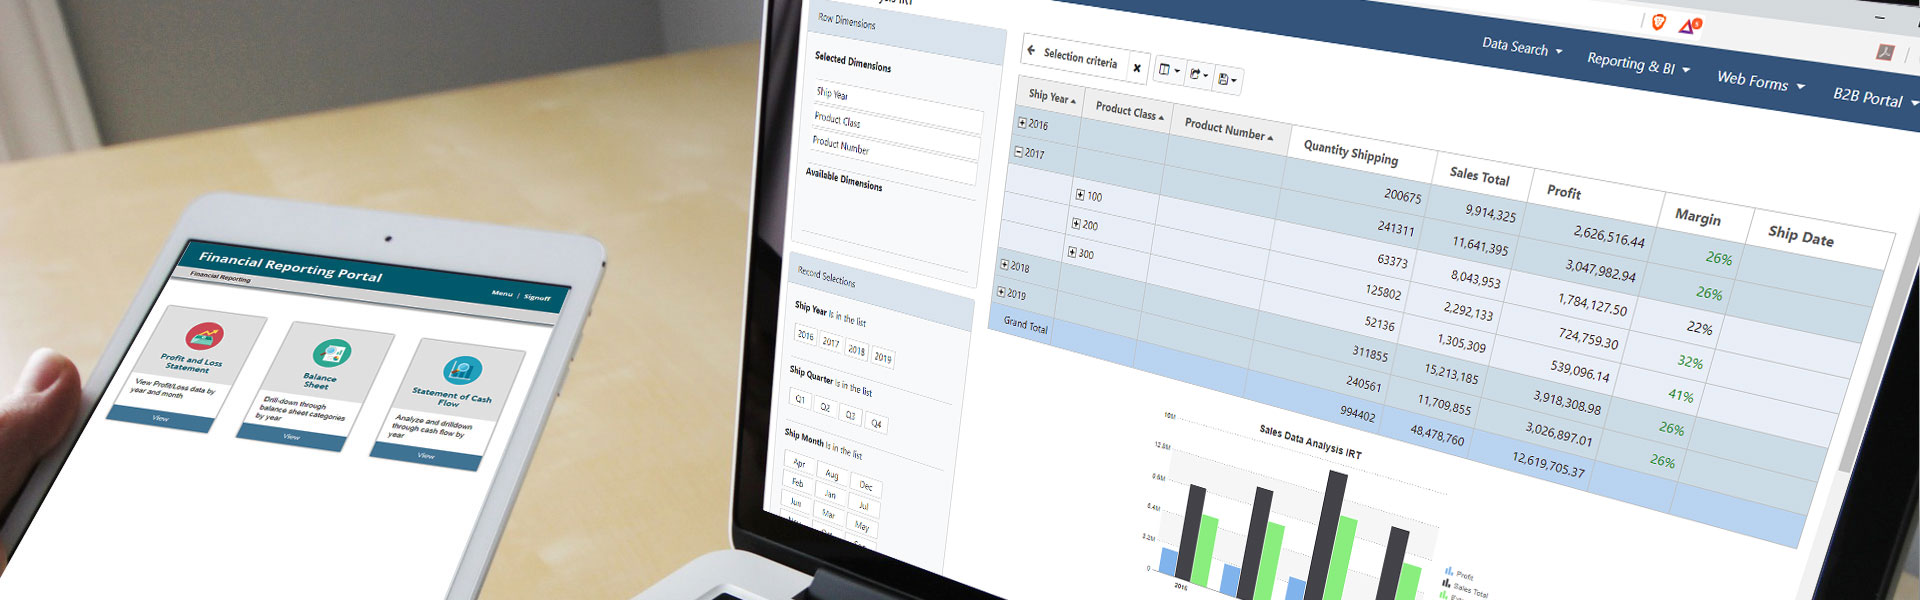 6 essential elements to look for in reporting software